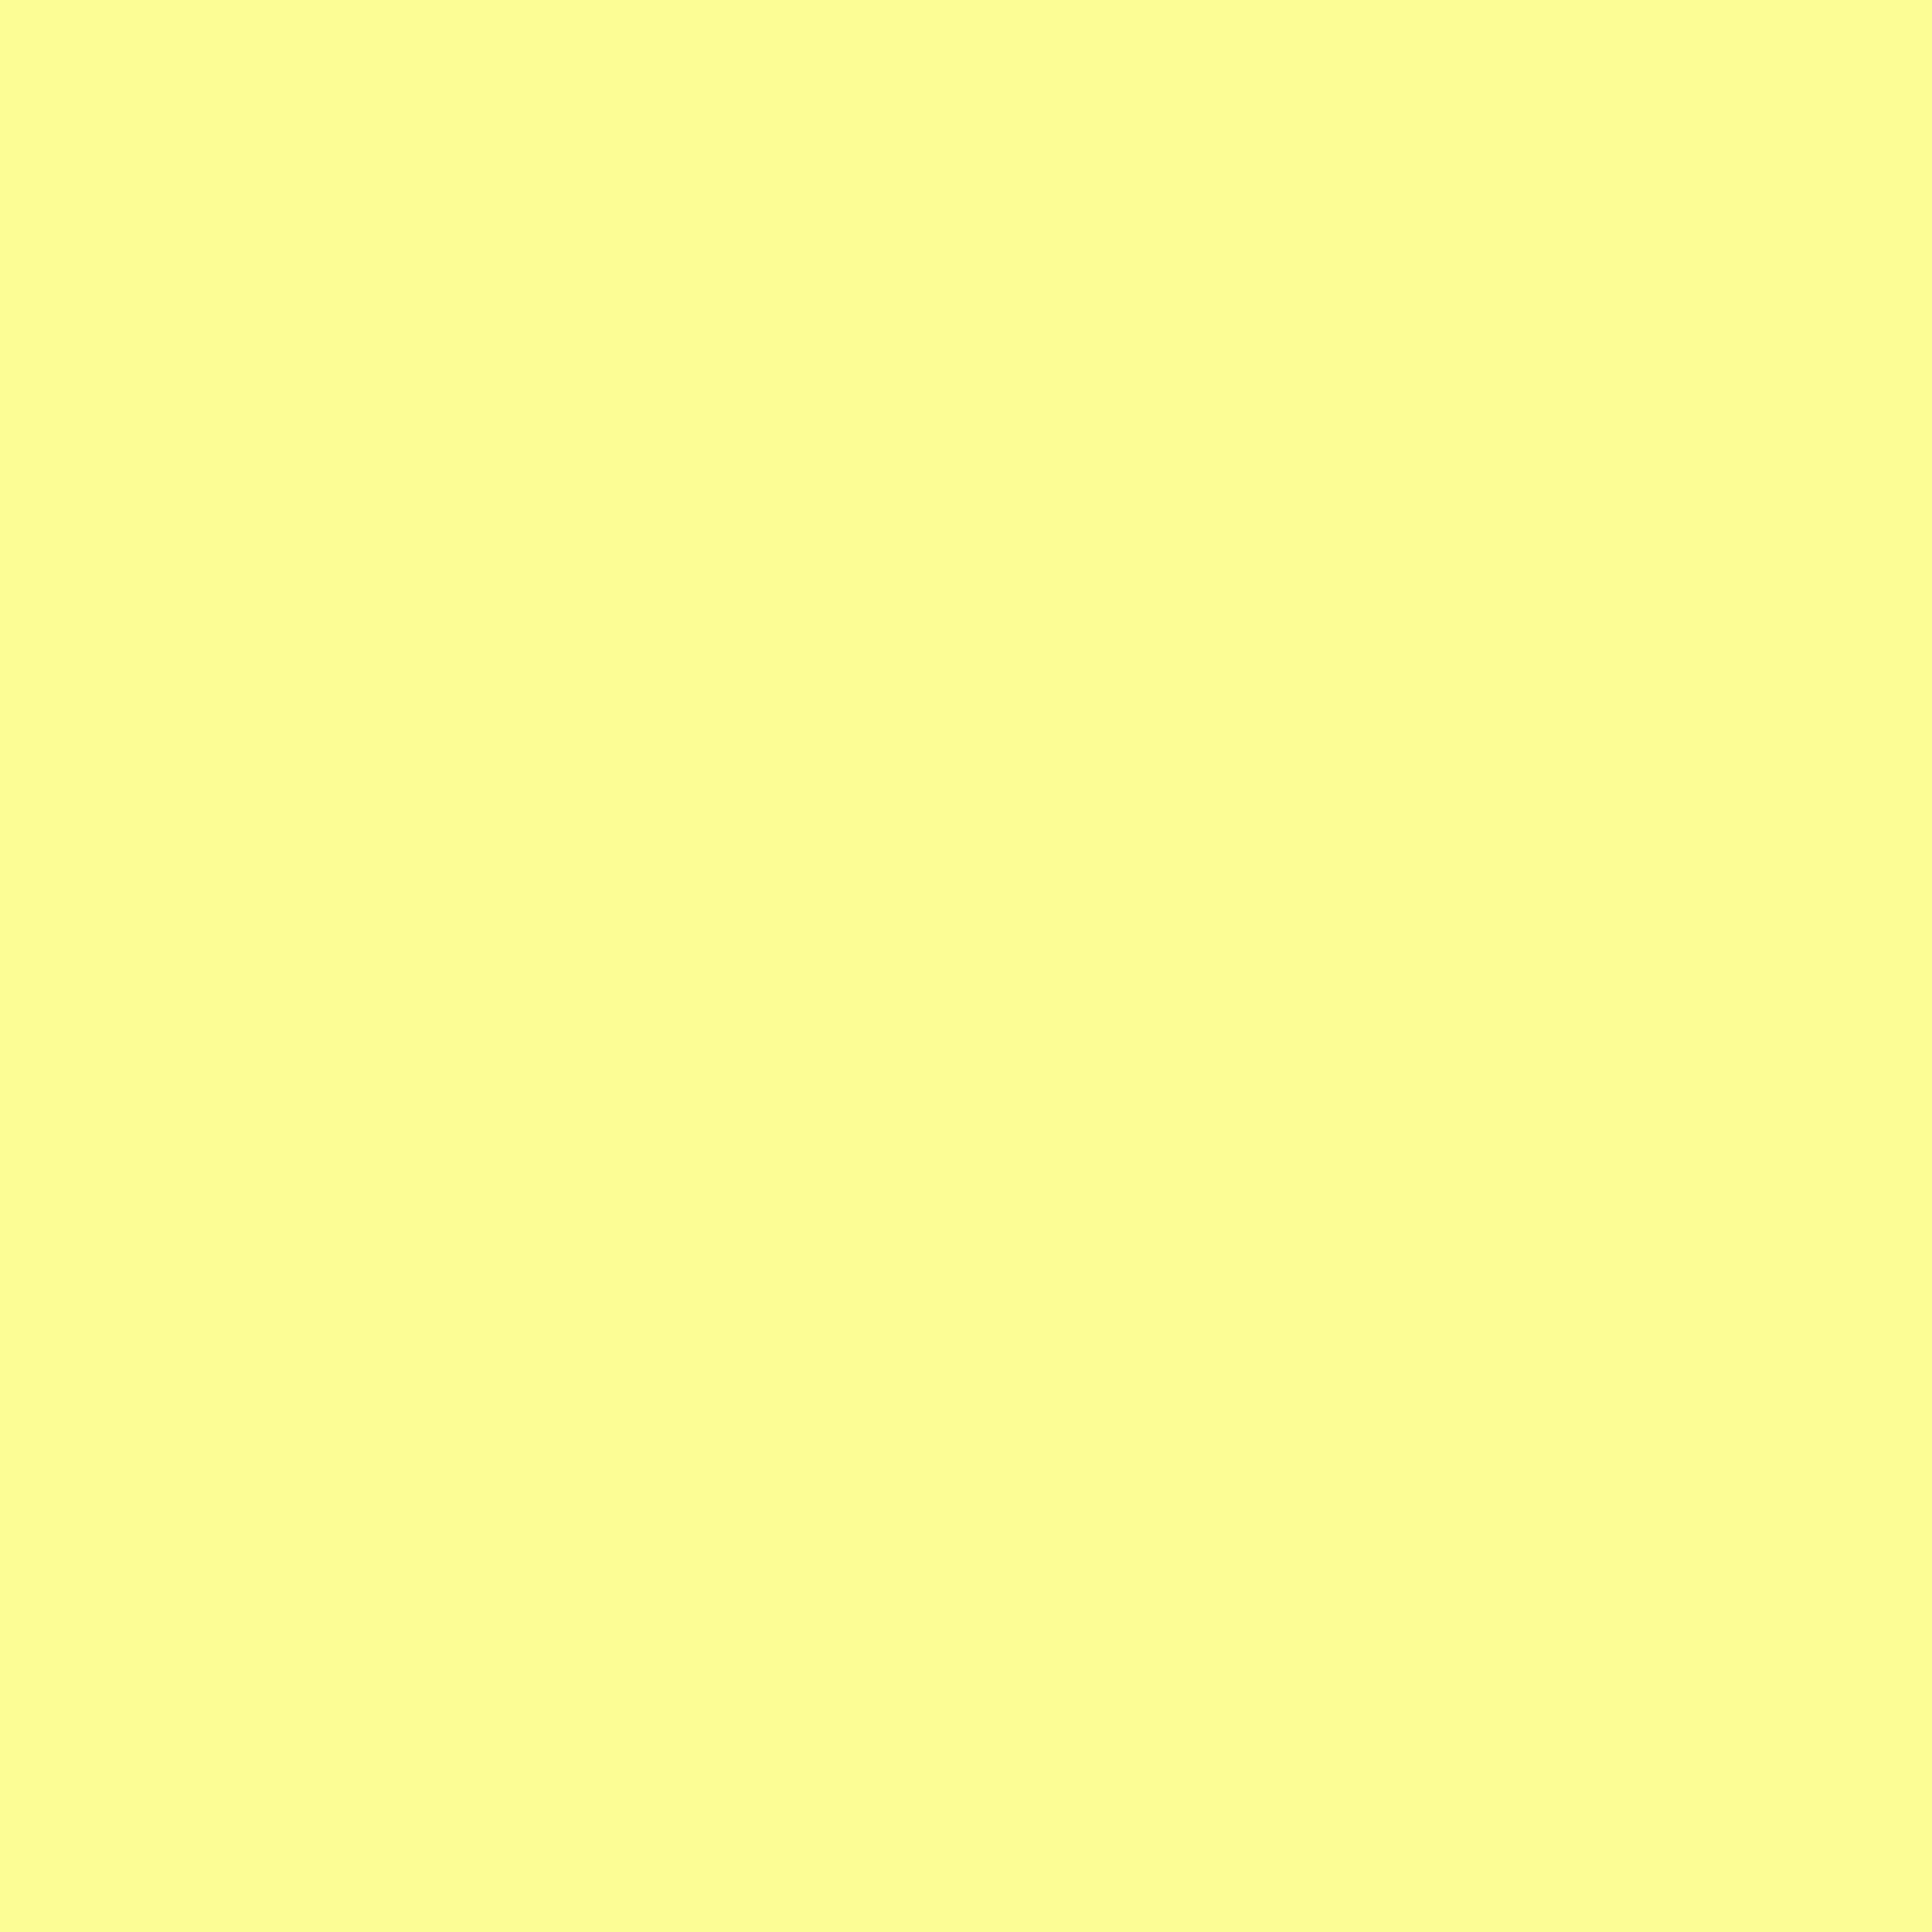 3600x3600 Pastel Yellow Solid Color Background